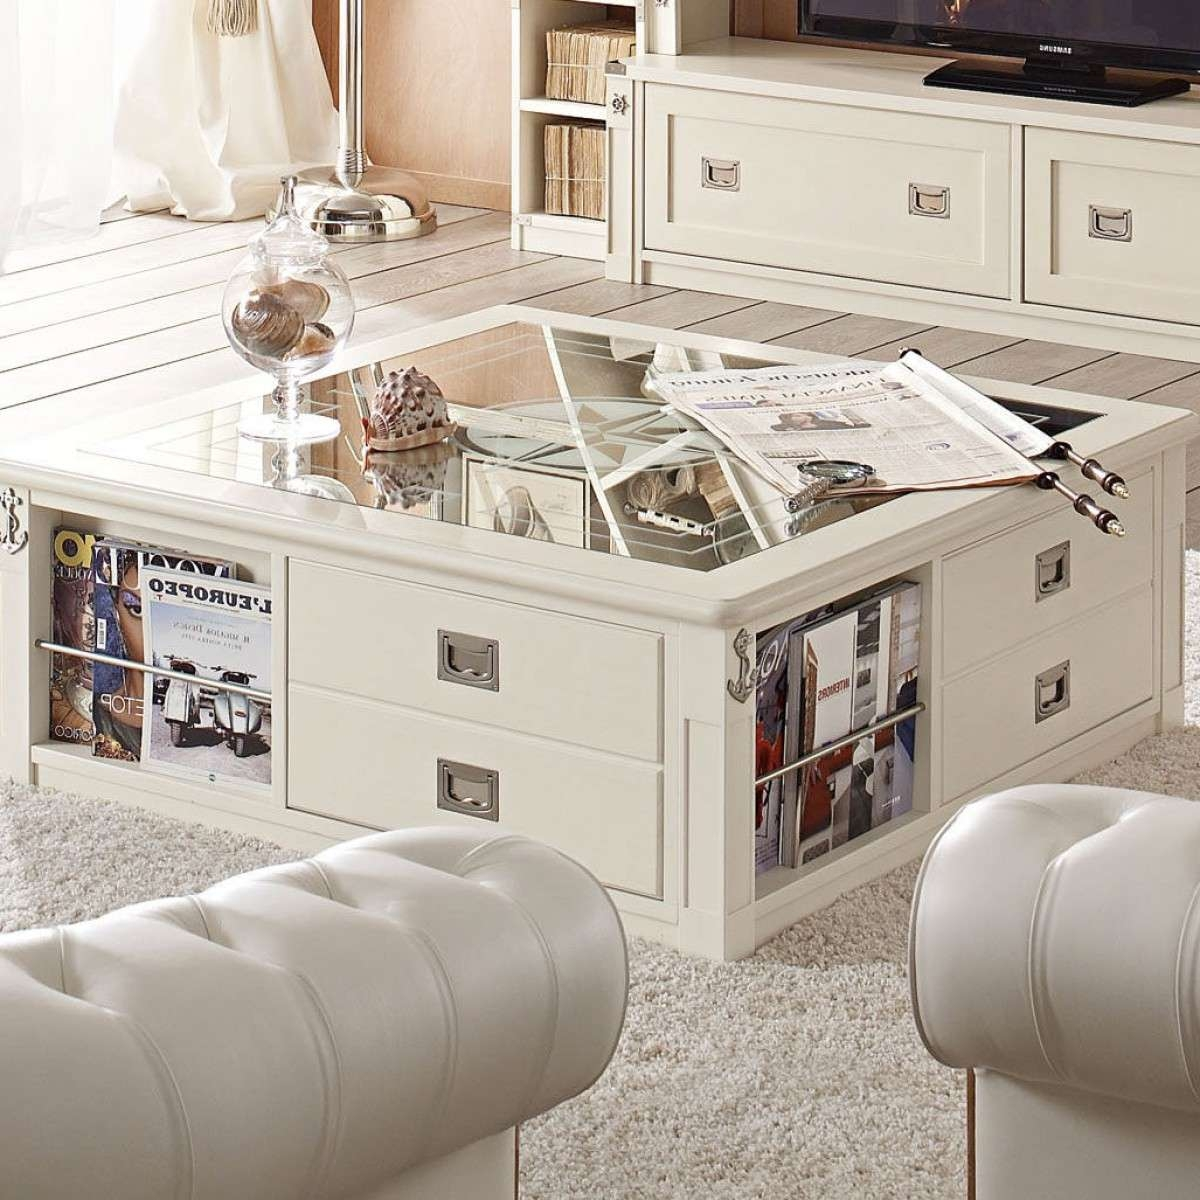 Current Square Wood Coffee Tables With Storage Pertaining To White Coffee Table With Storage (View 10 of 20)